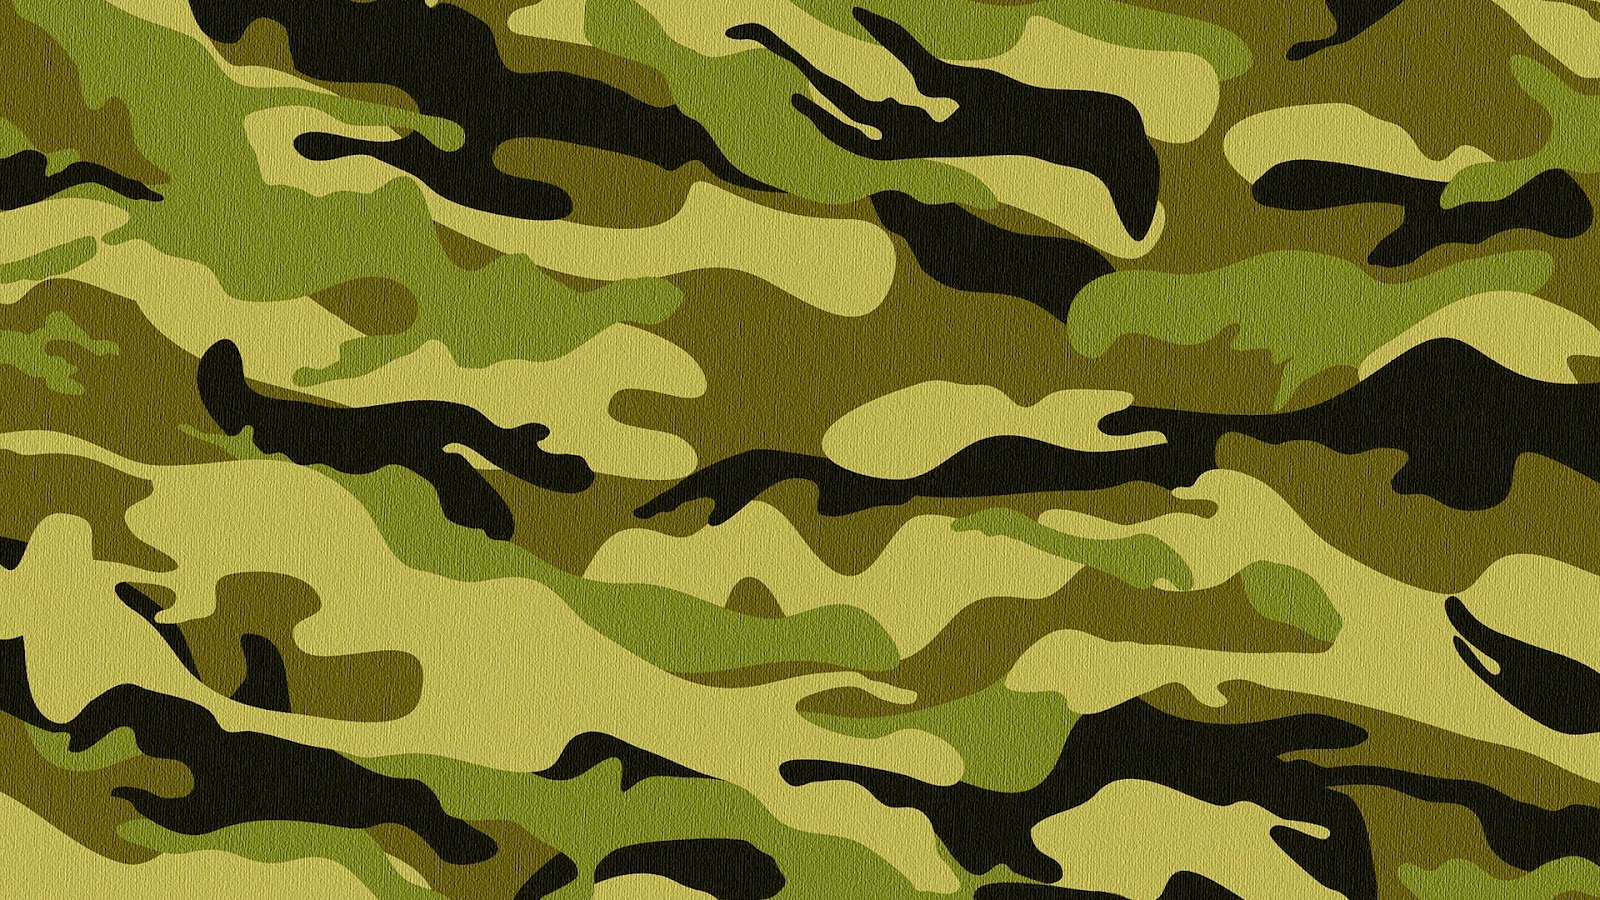 Army camouflage colors.